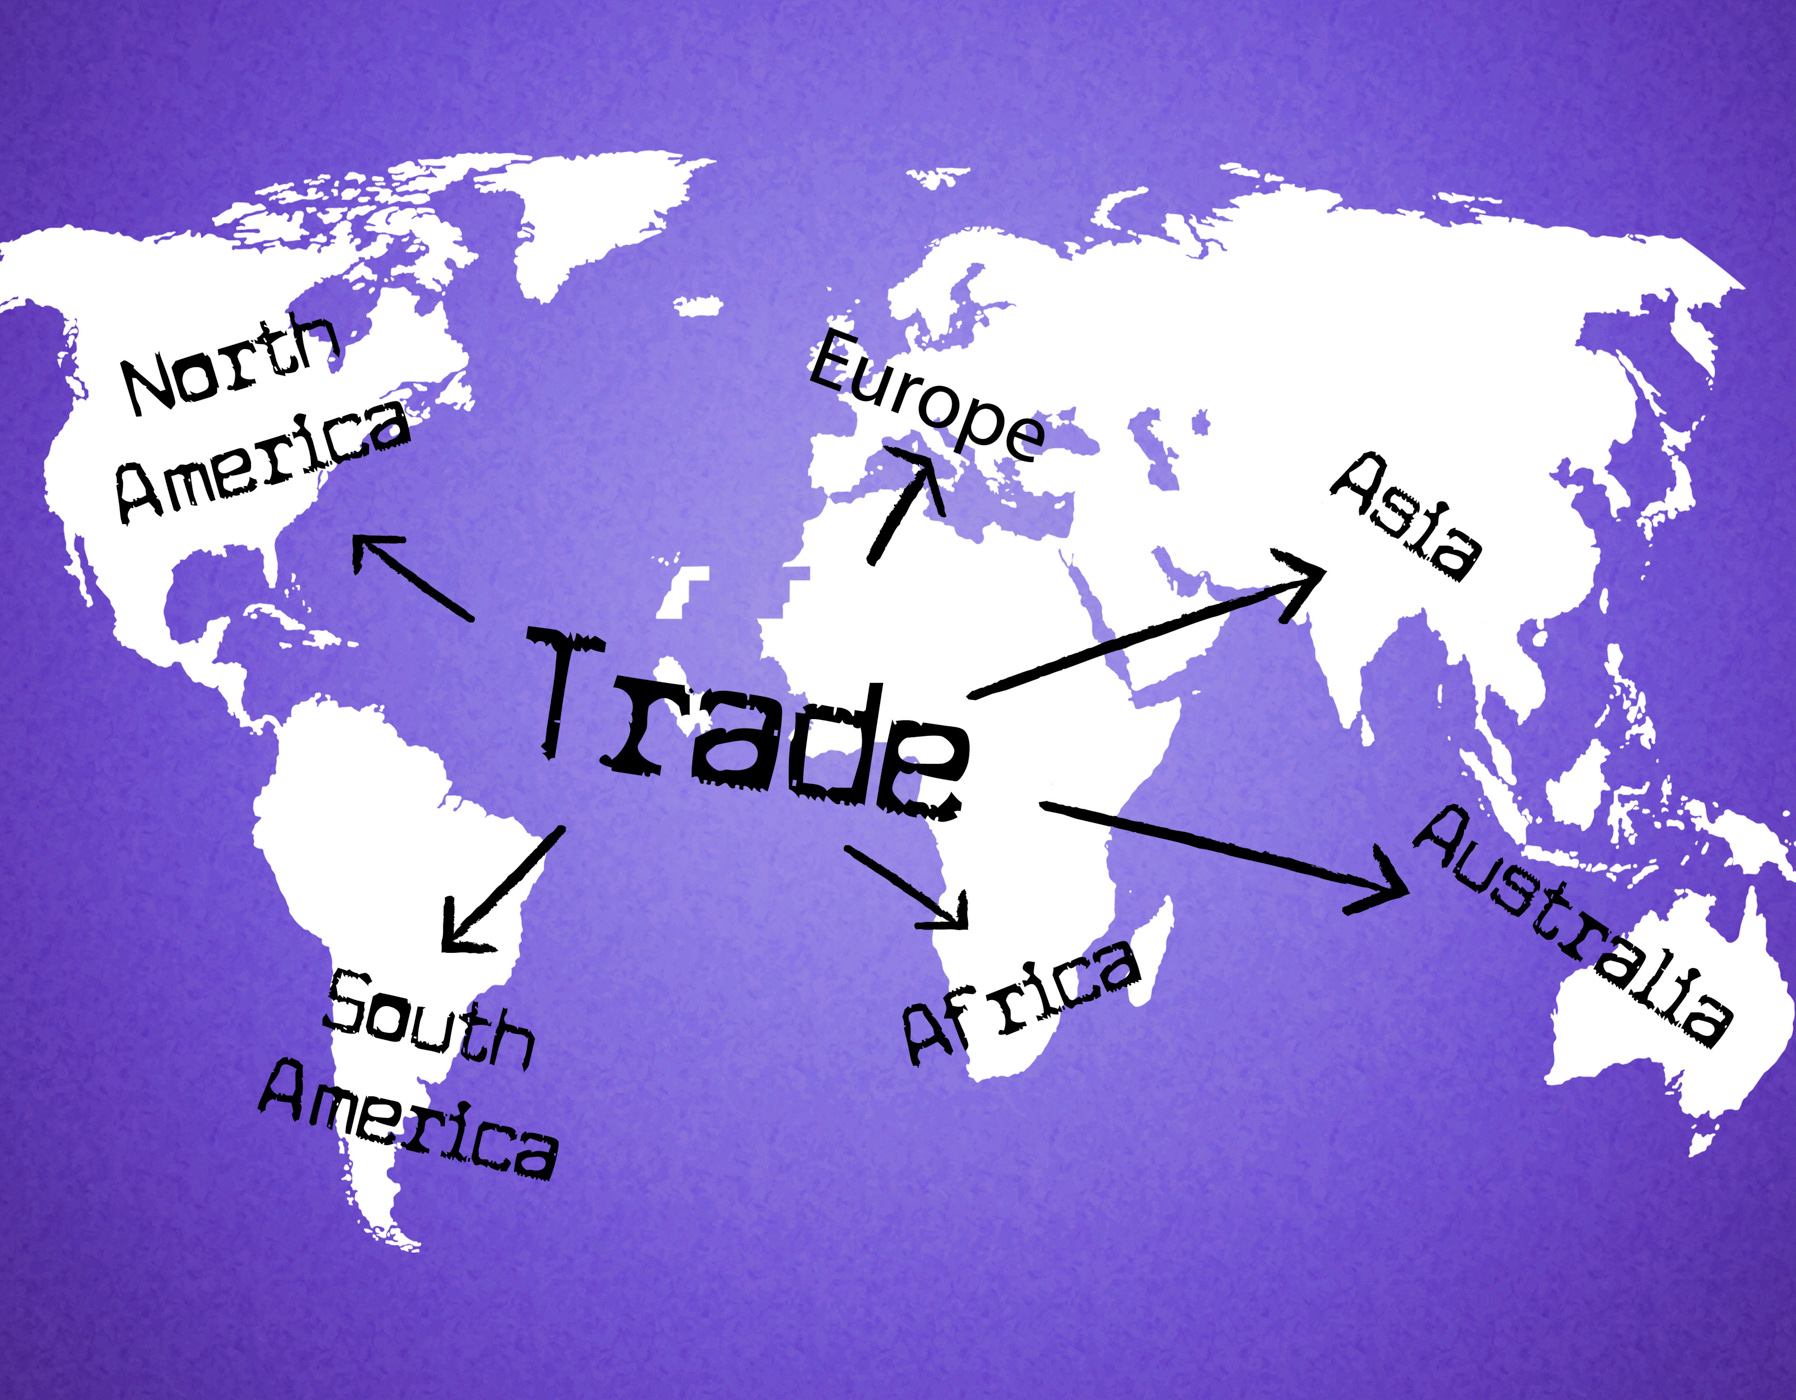 Worldwide trade represents buy corporation and e-commerce photo